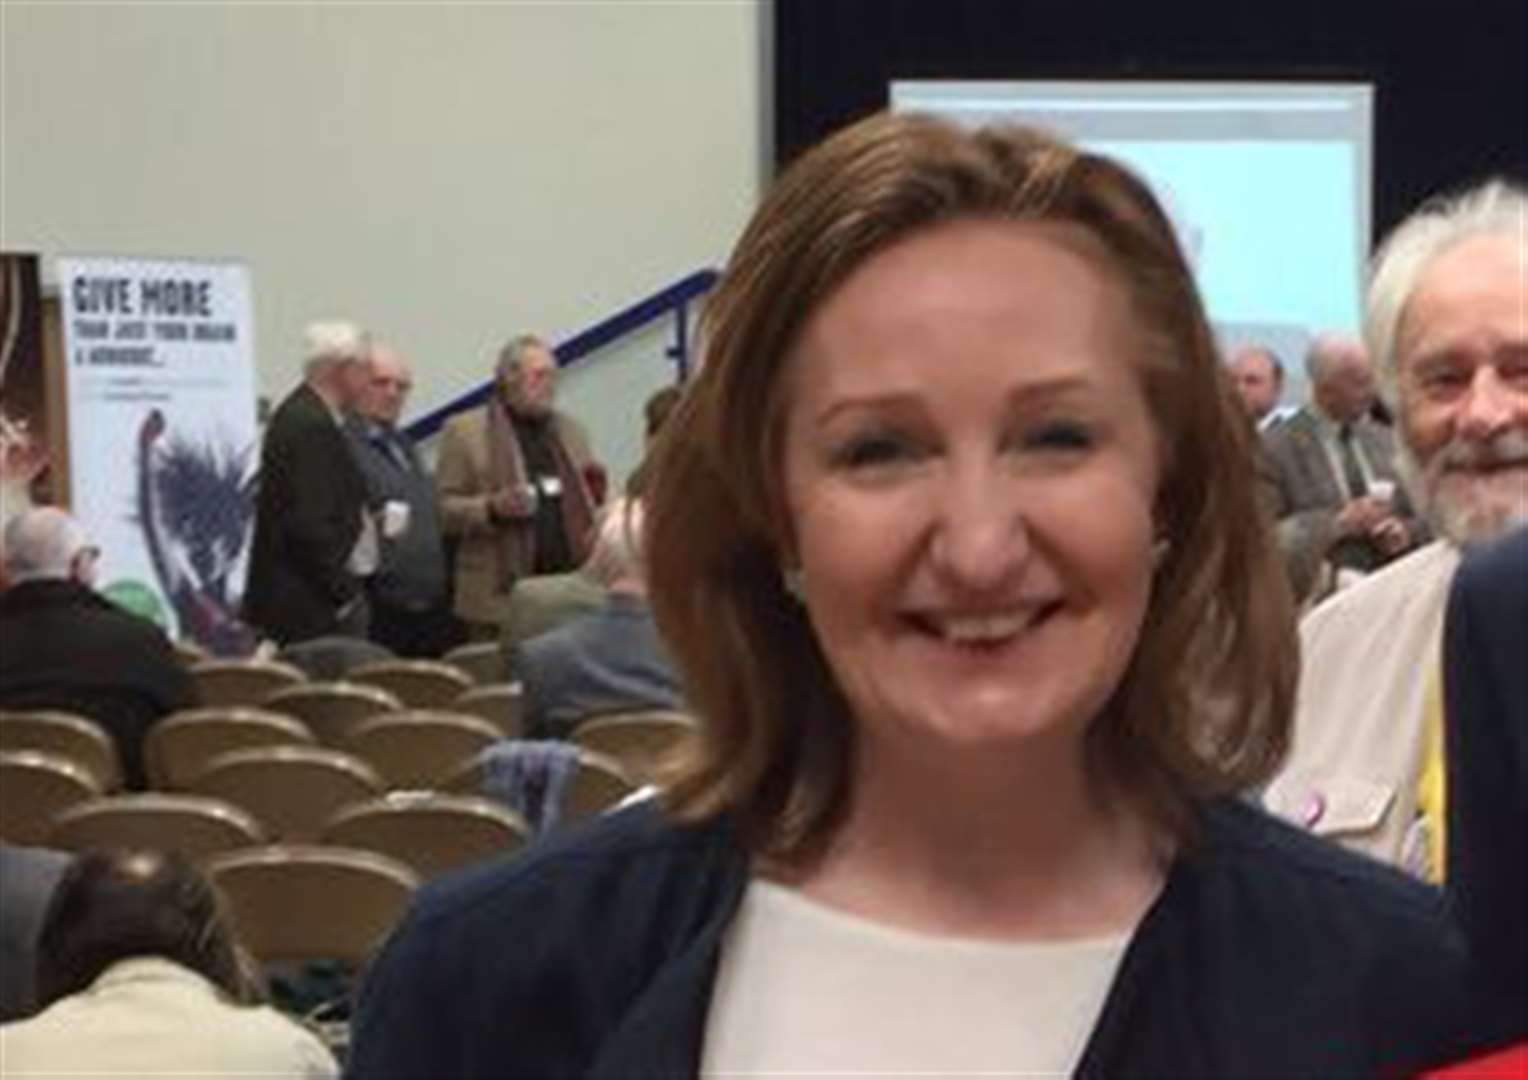 UKIP leadership contender Suzanne Evans pulls out of race to be candidate in Sleaford and North Hykeham by-election